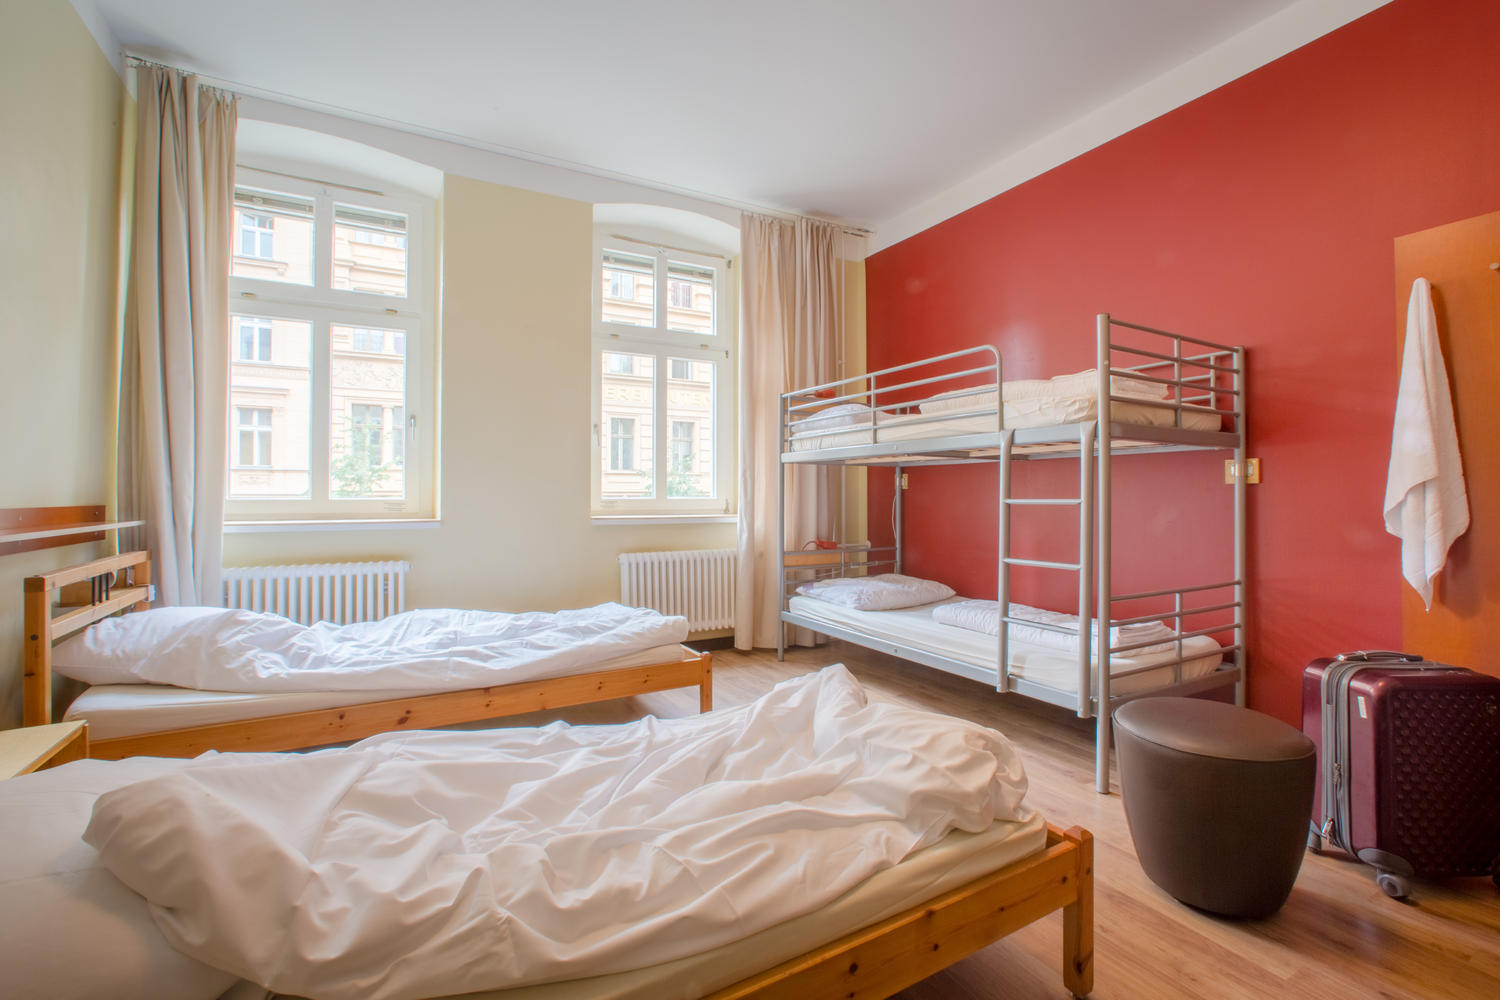 EastSeven Berlin Hostel, Berlin